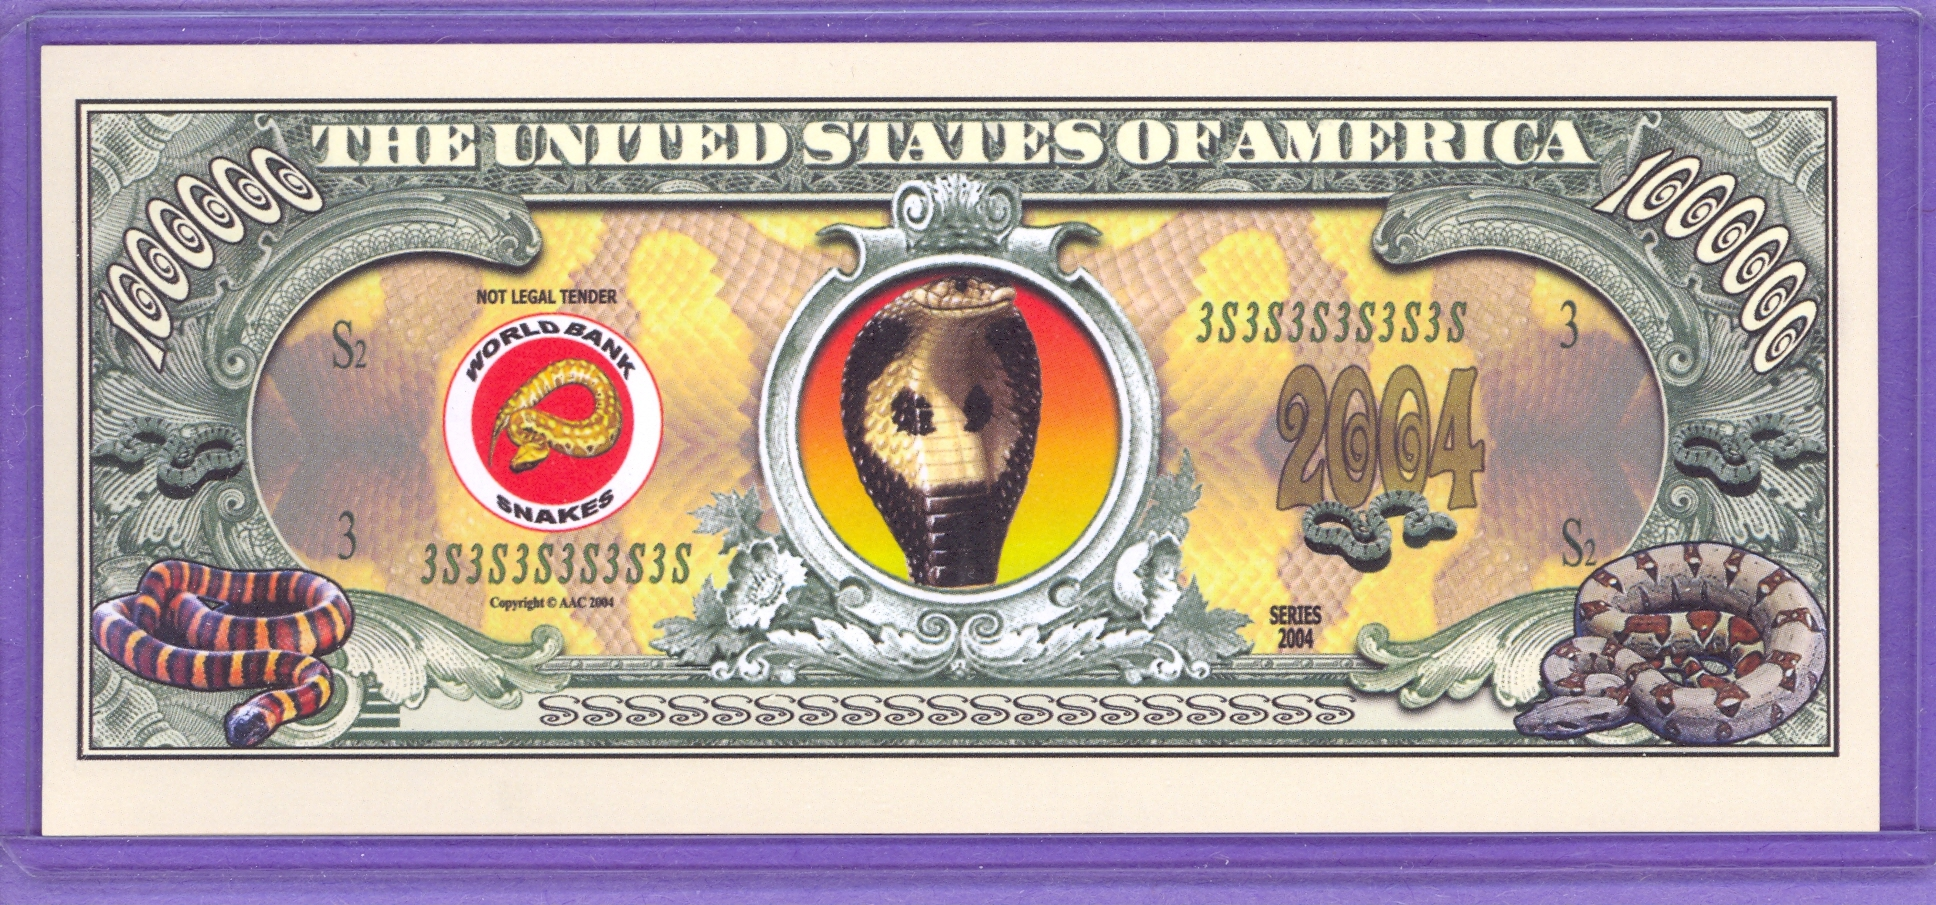 1,000,000 Snakes Novelty or Fantasy Money